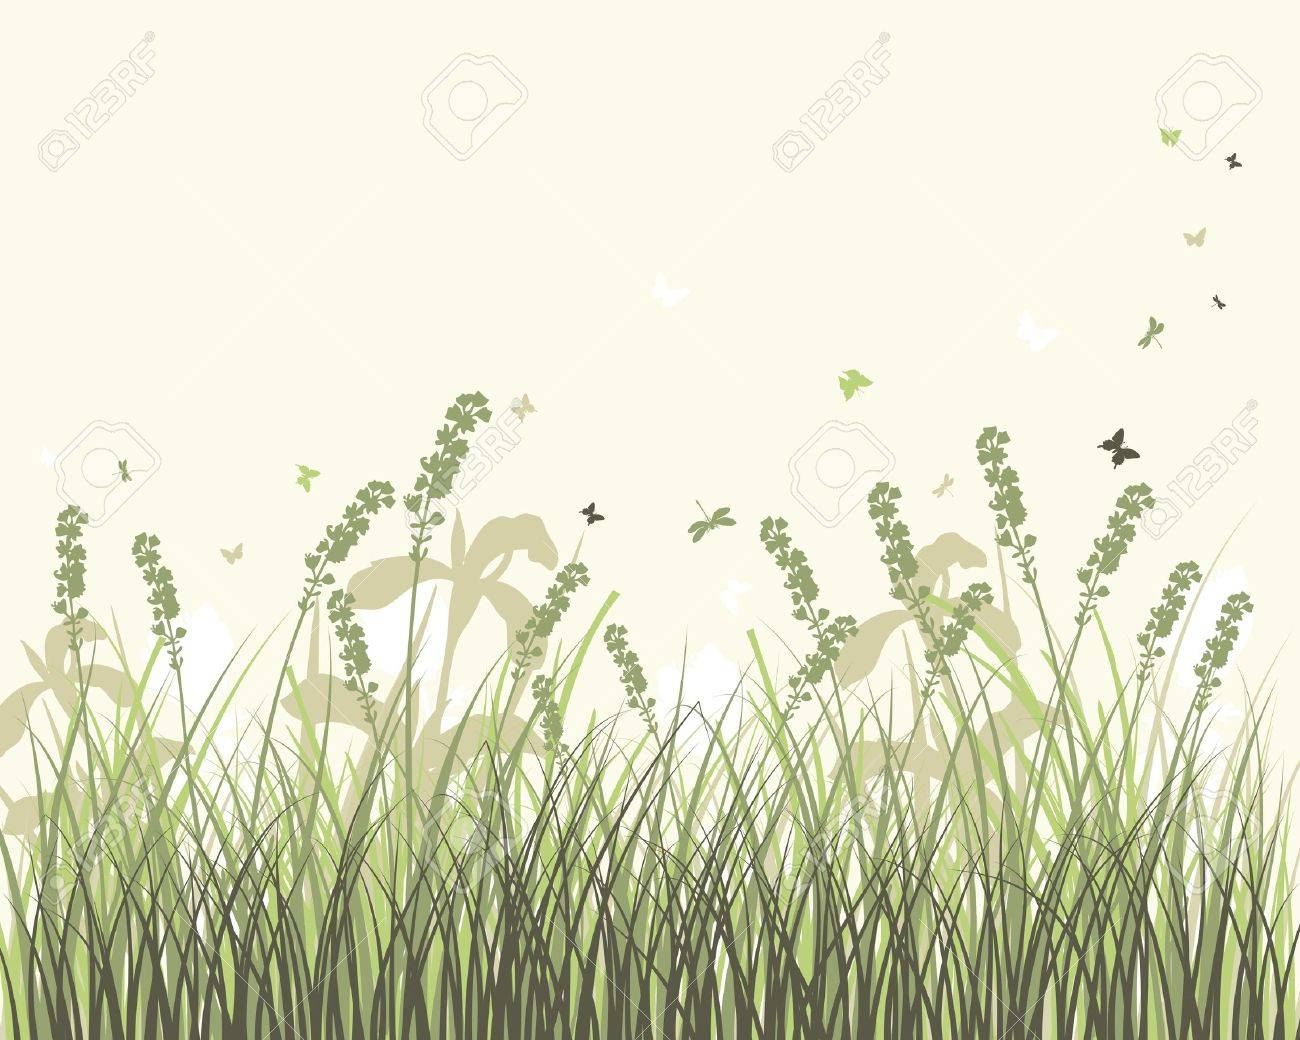 Vector grass silhouettes background. All objects are separated. Stock Vector - 9504326